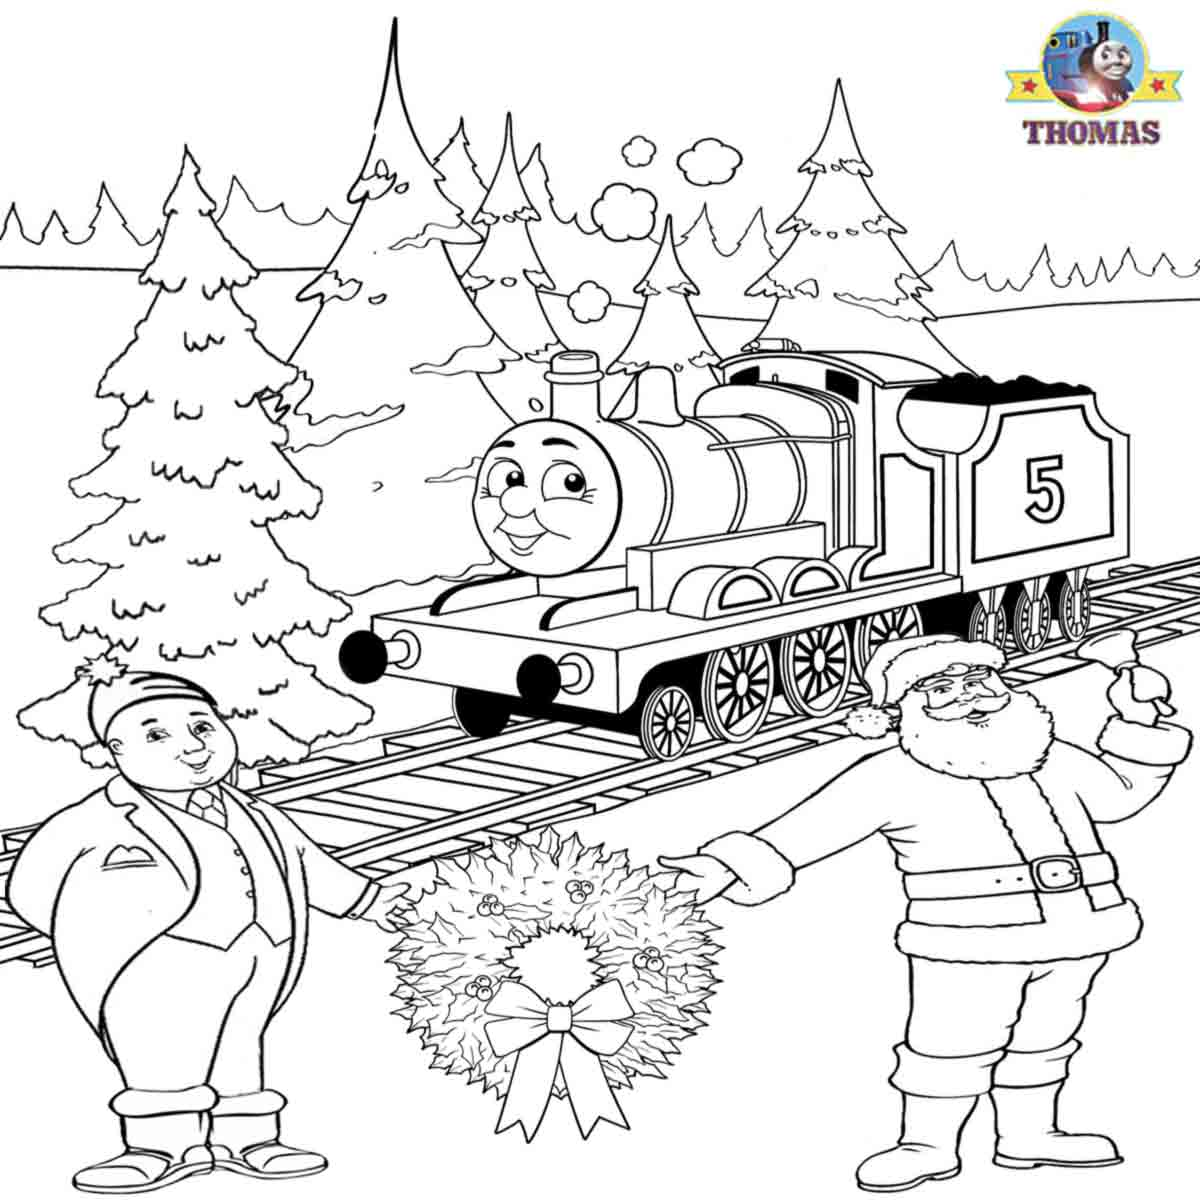 We let it snow kid free worksheets james train santa claus awesome coloring pages to print